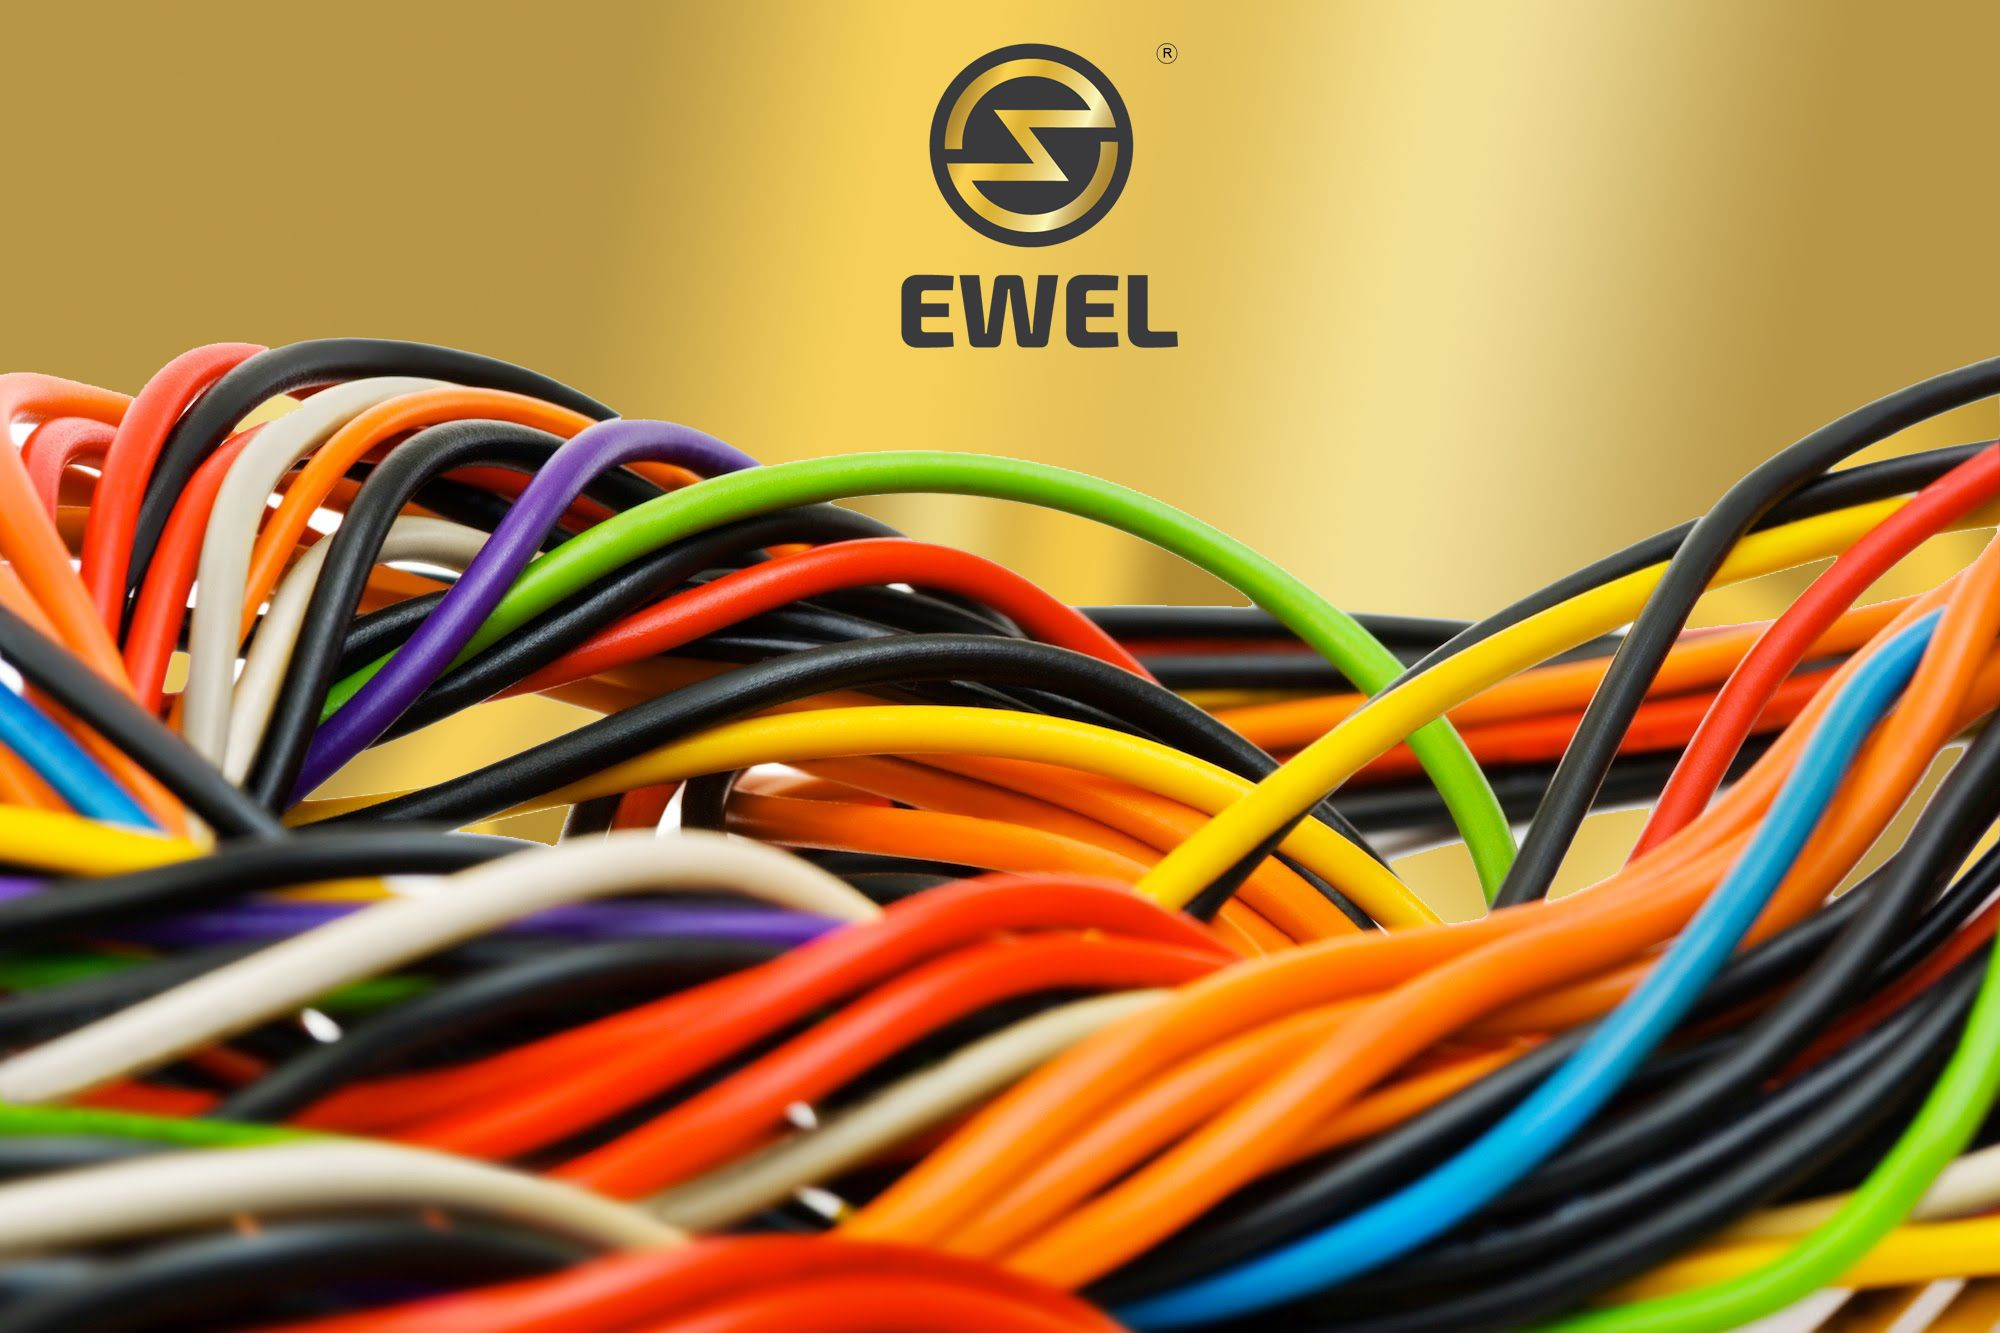 which is the best industrial wire products manufacturing company in india best wires and cables [ 2000 x 1333 Pixel ]